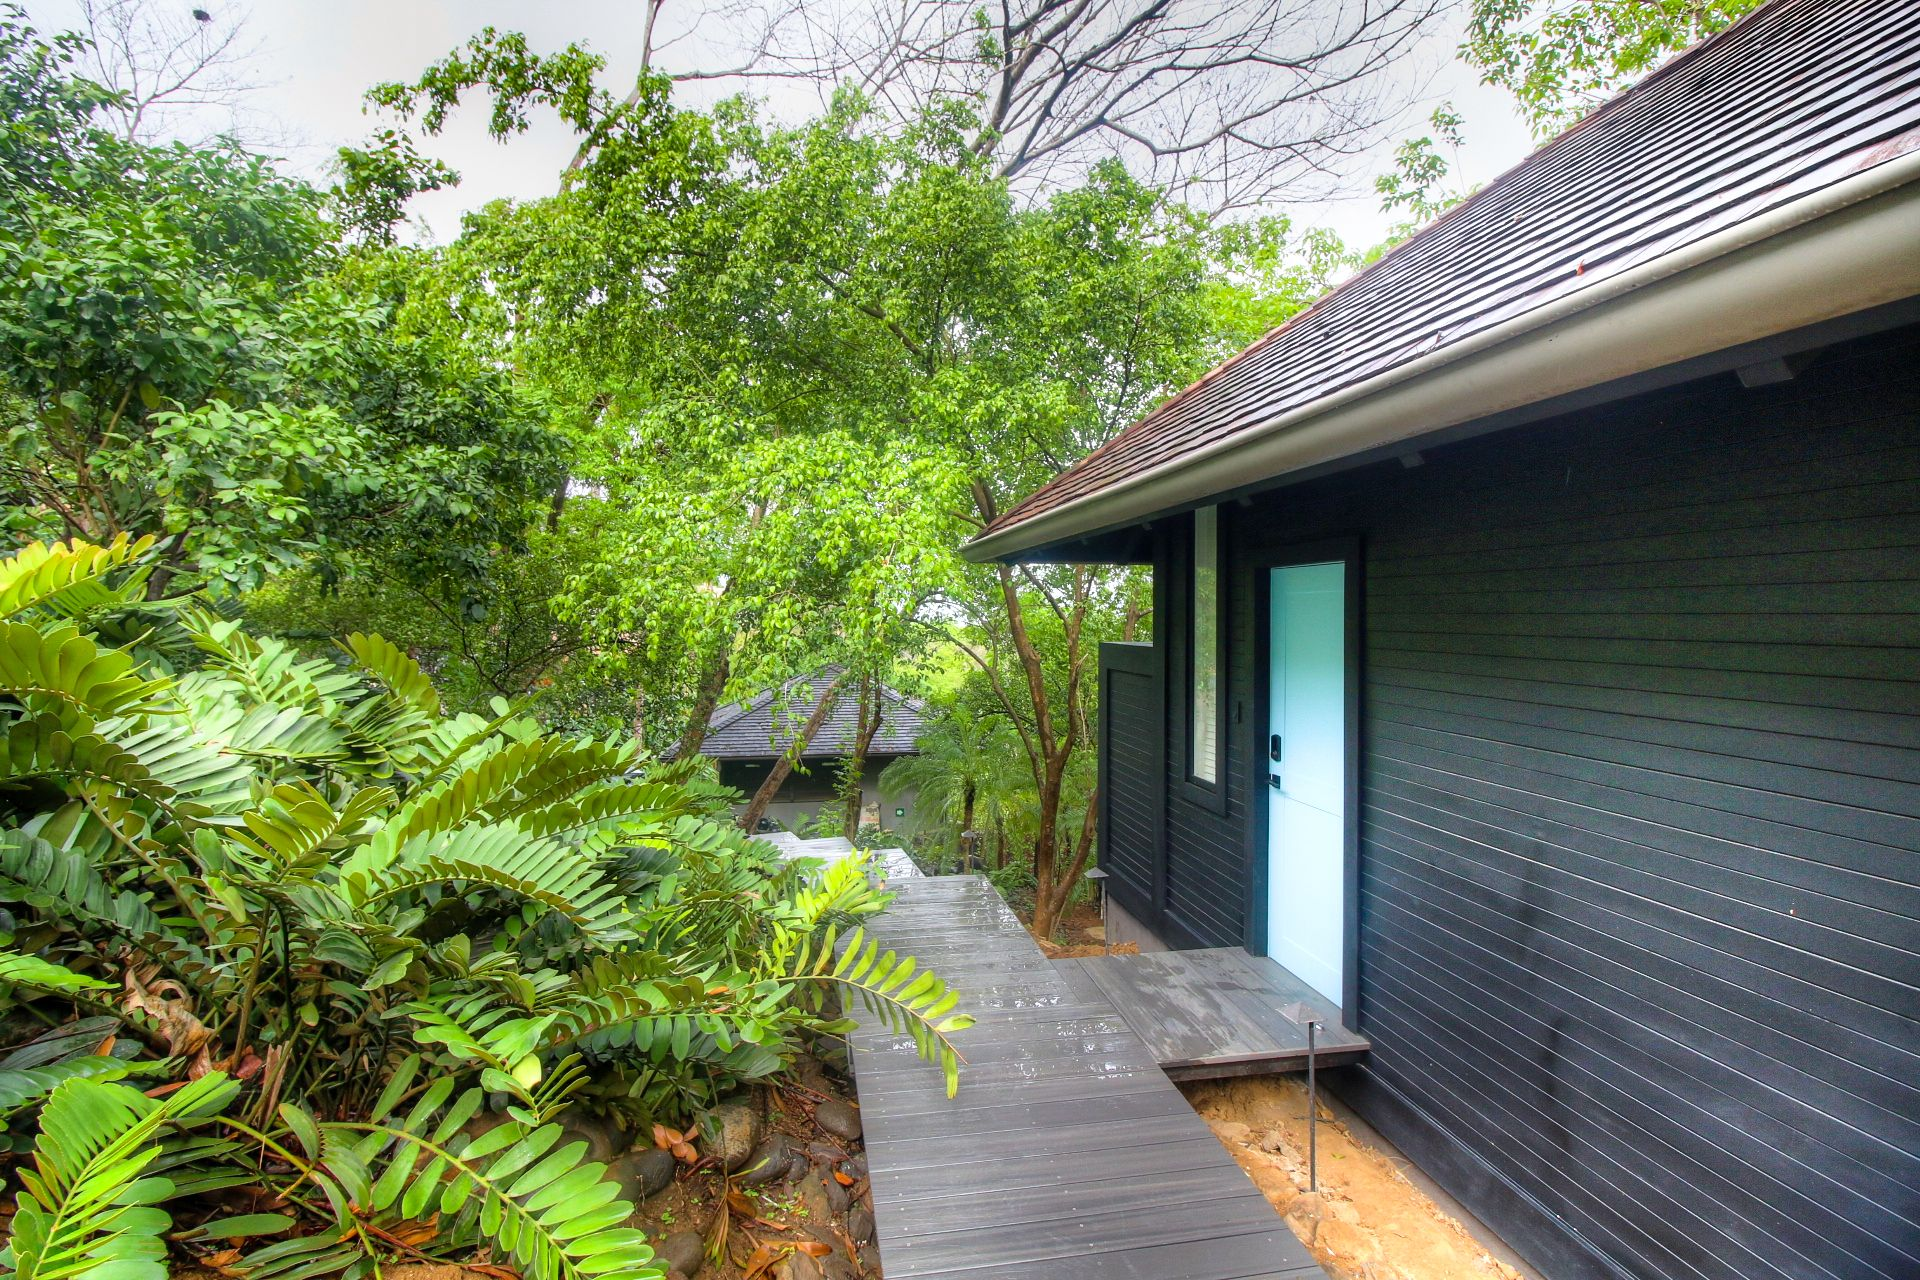 Lush jungle surrounds the structures